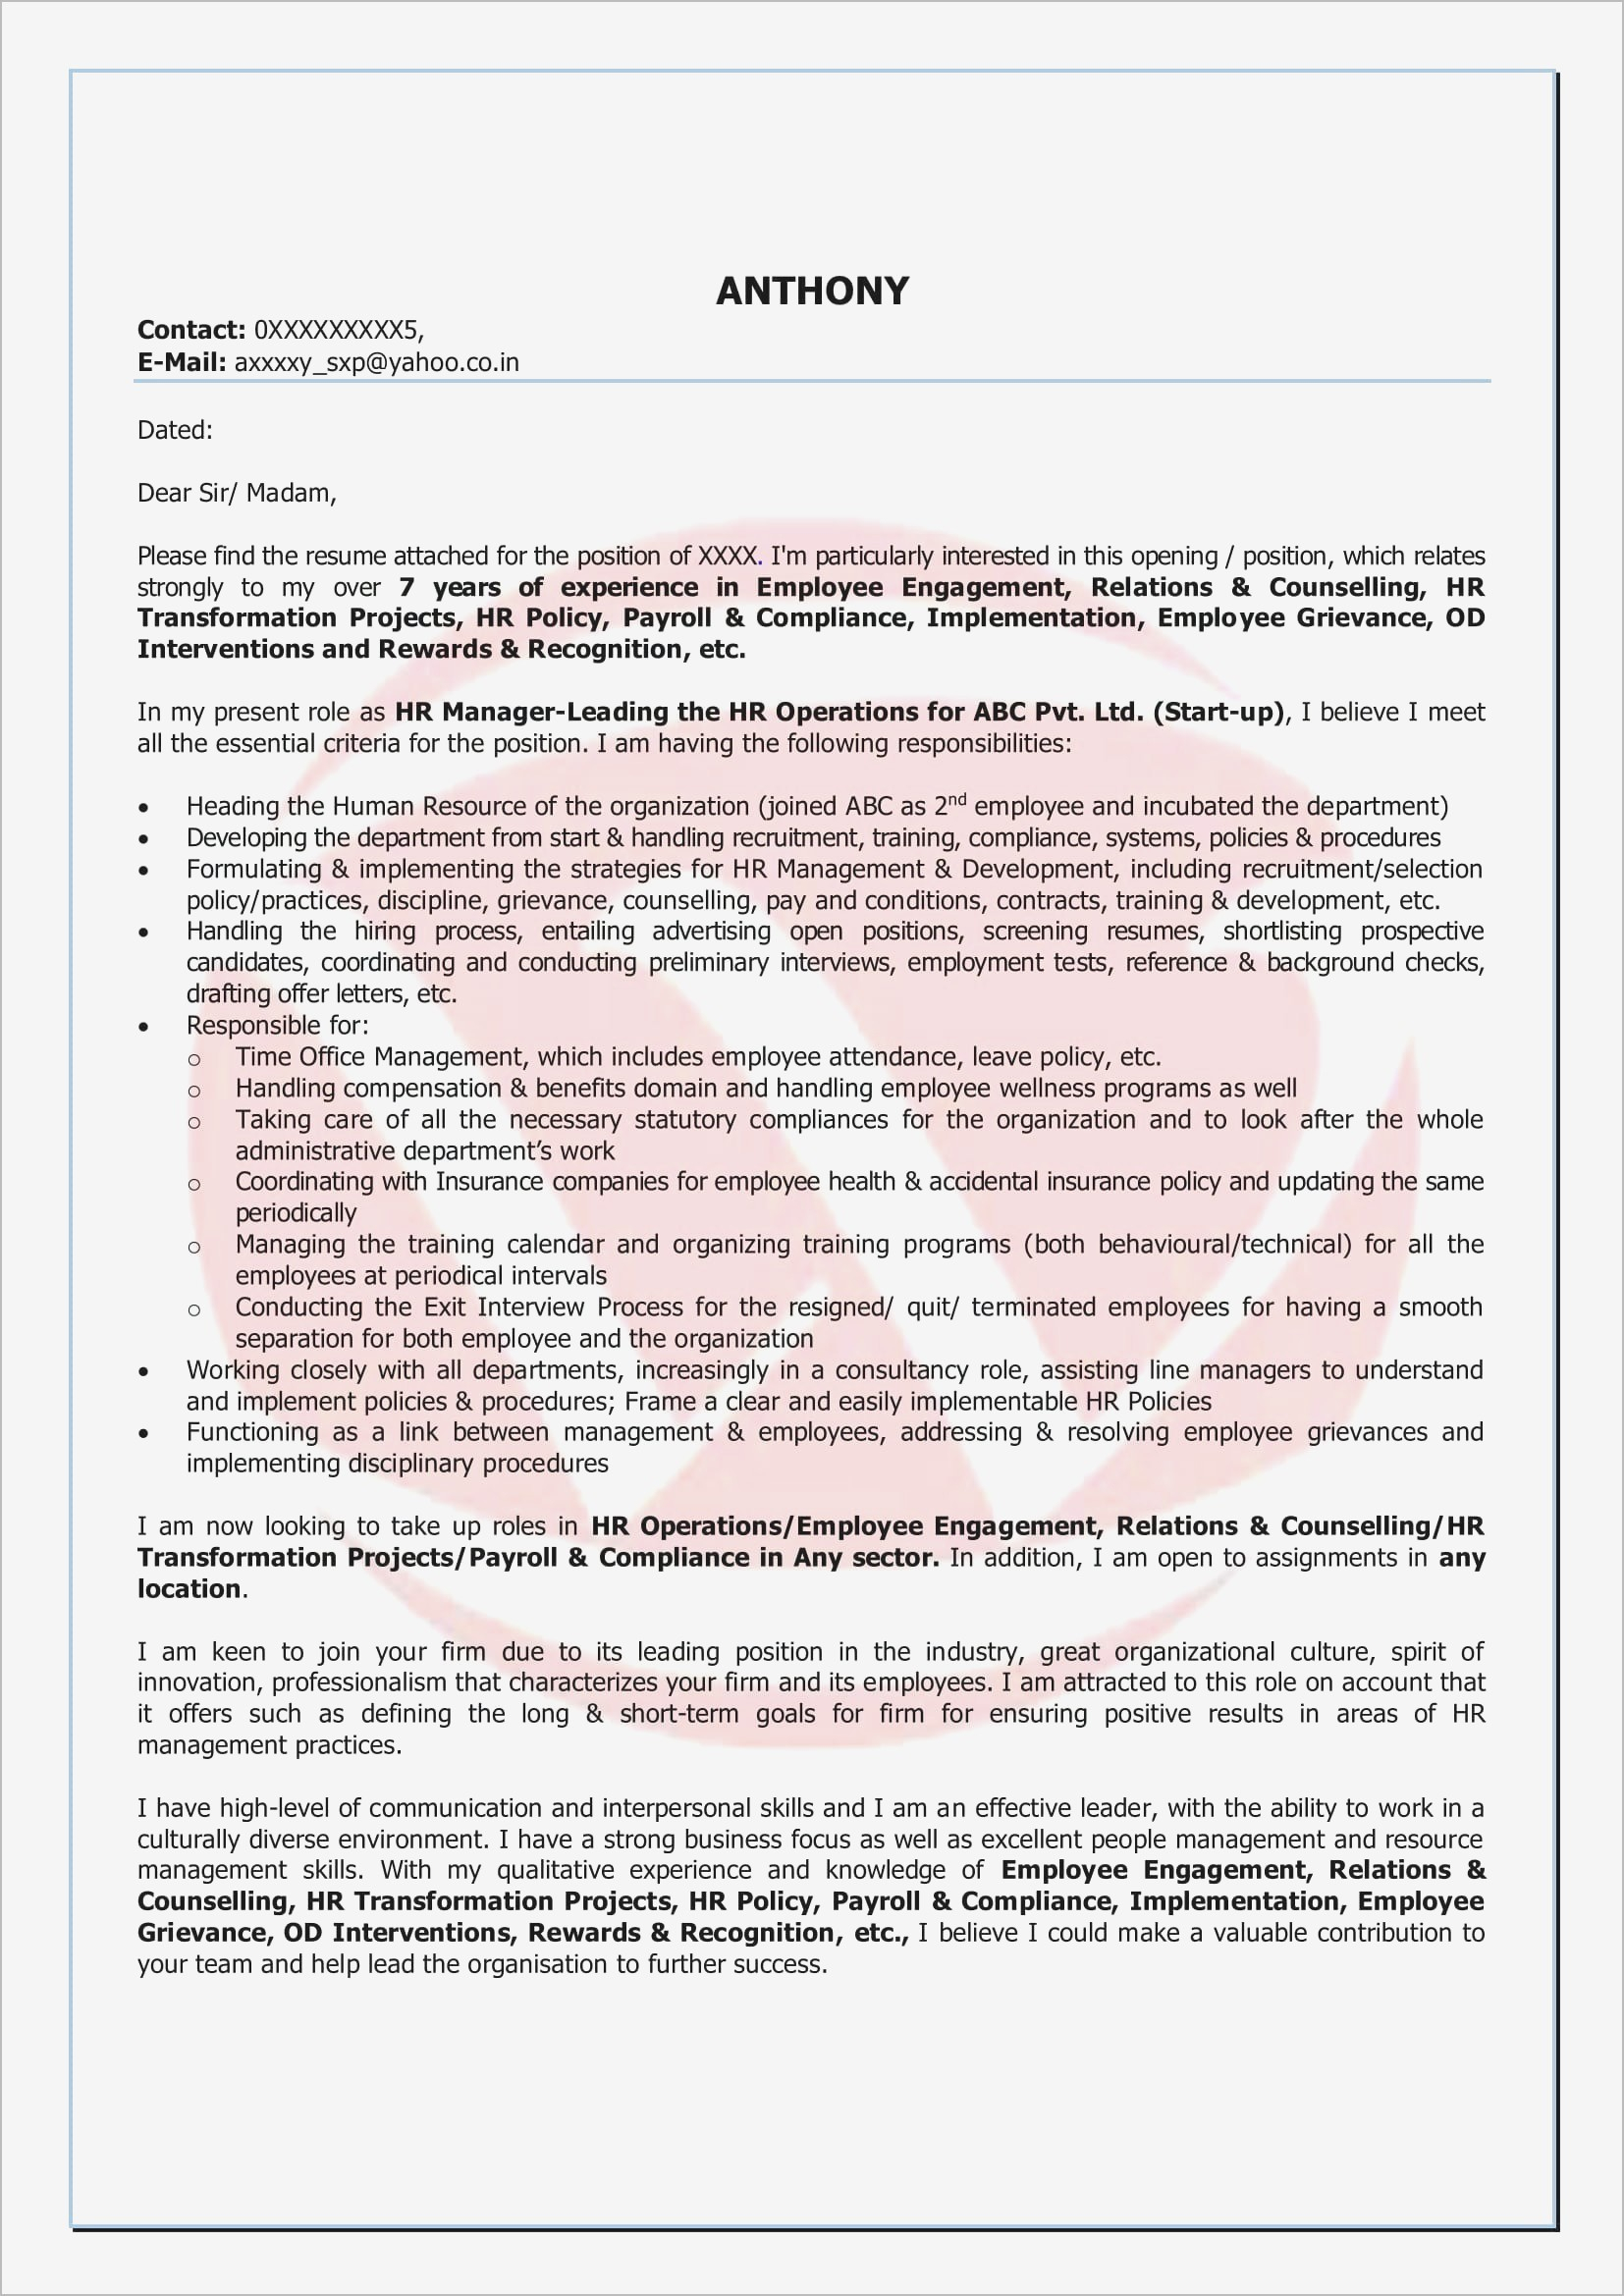 Letter Of Recommendation Template Word - Job Re Mendation Letter Inspirationa Letter Re Mendation Template